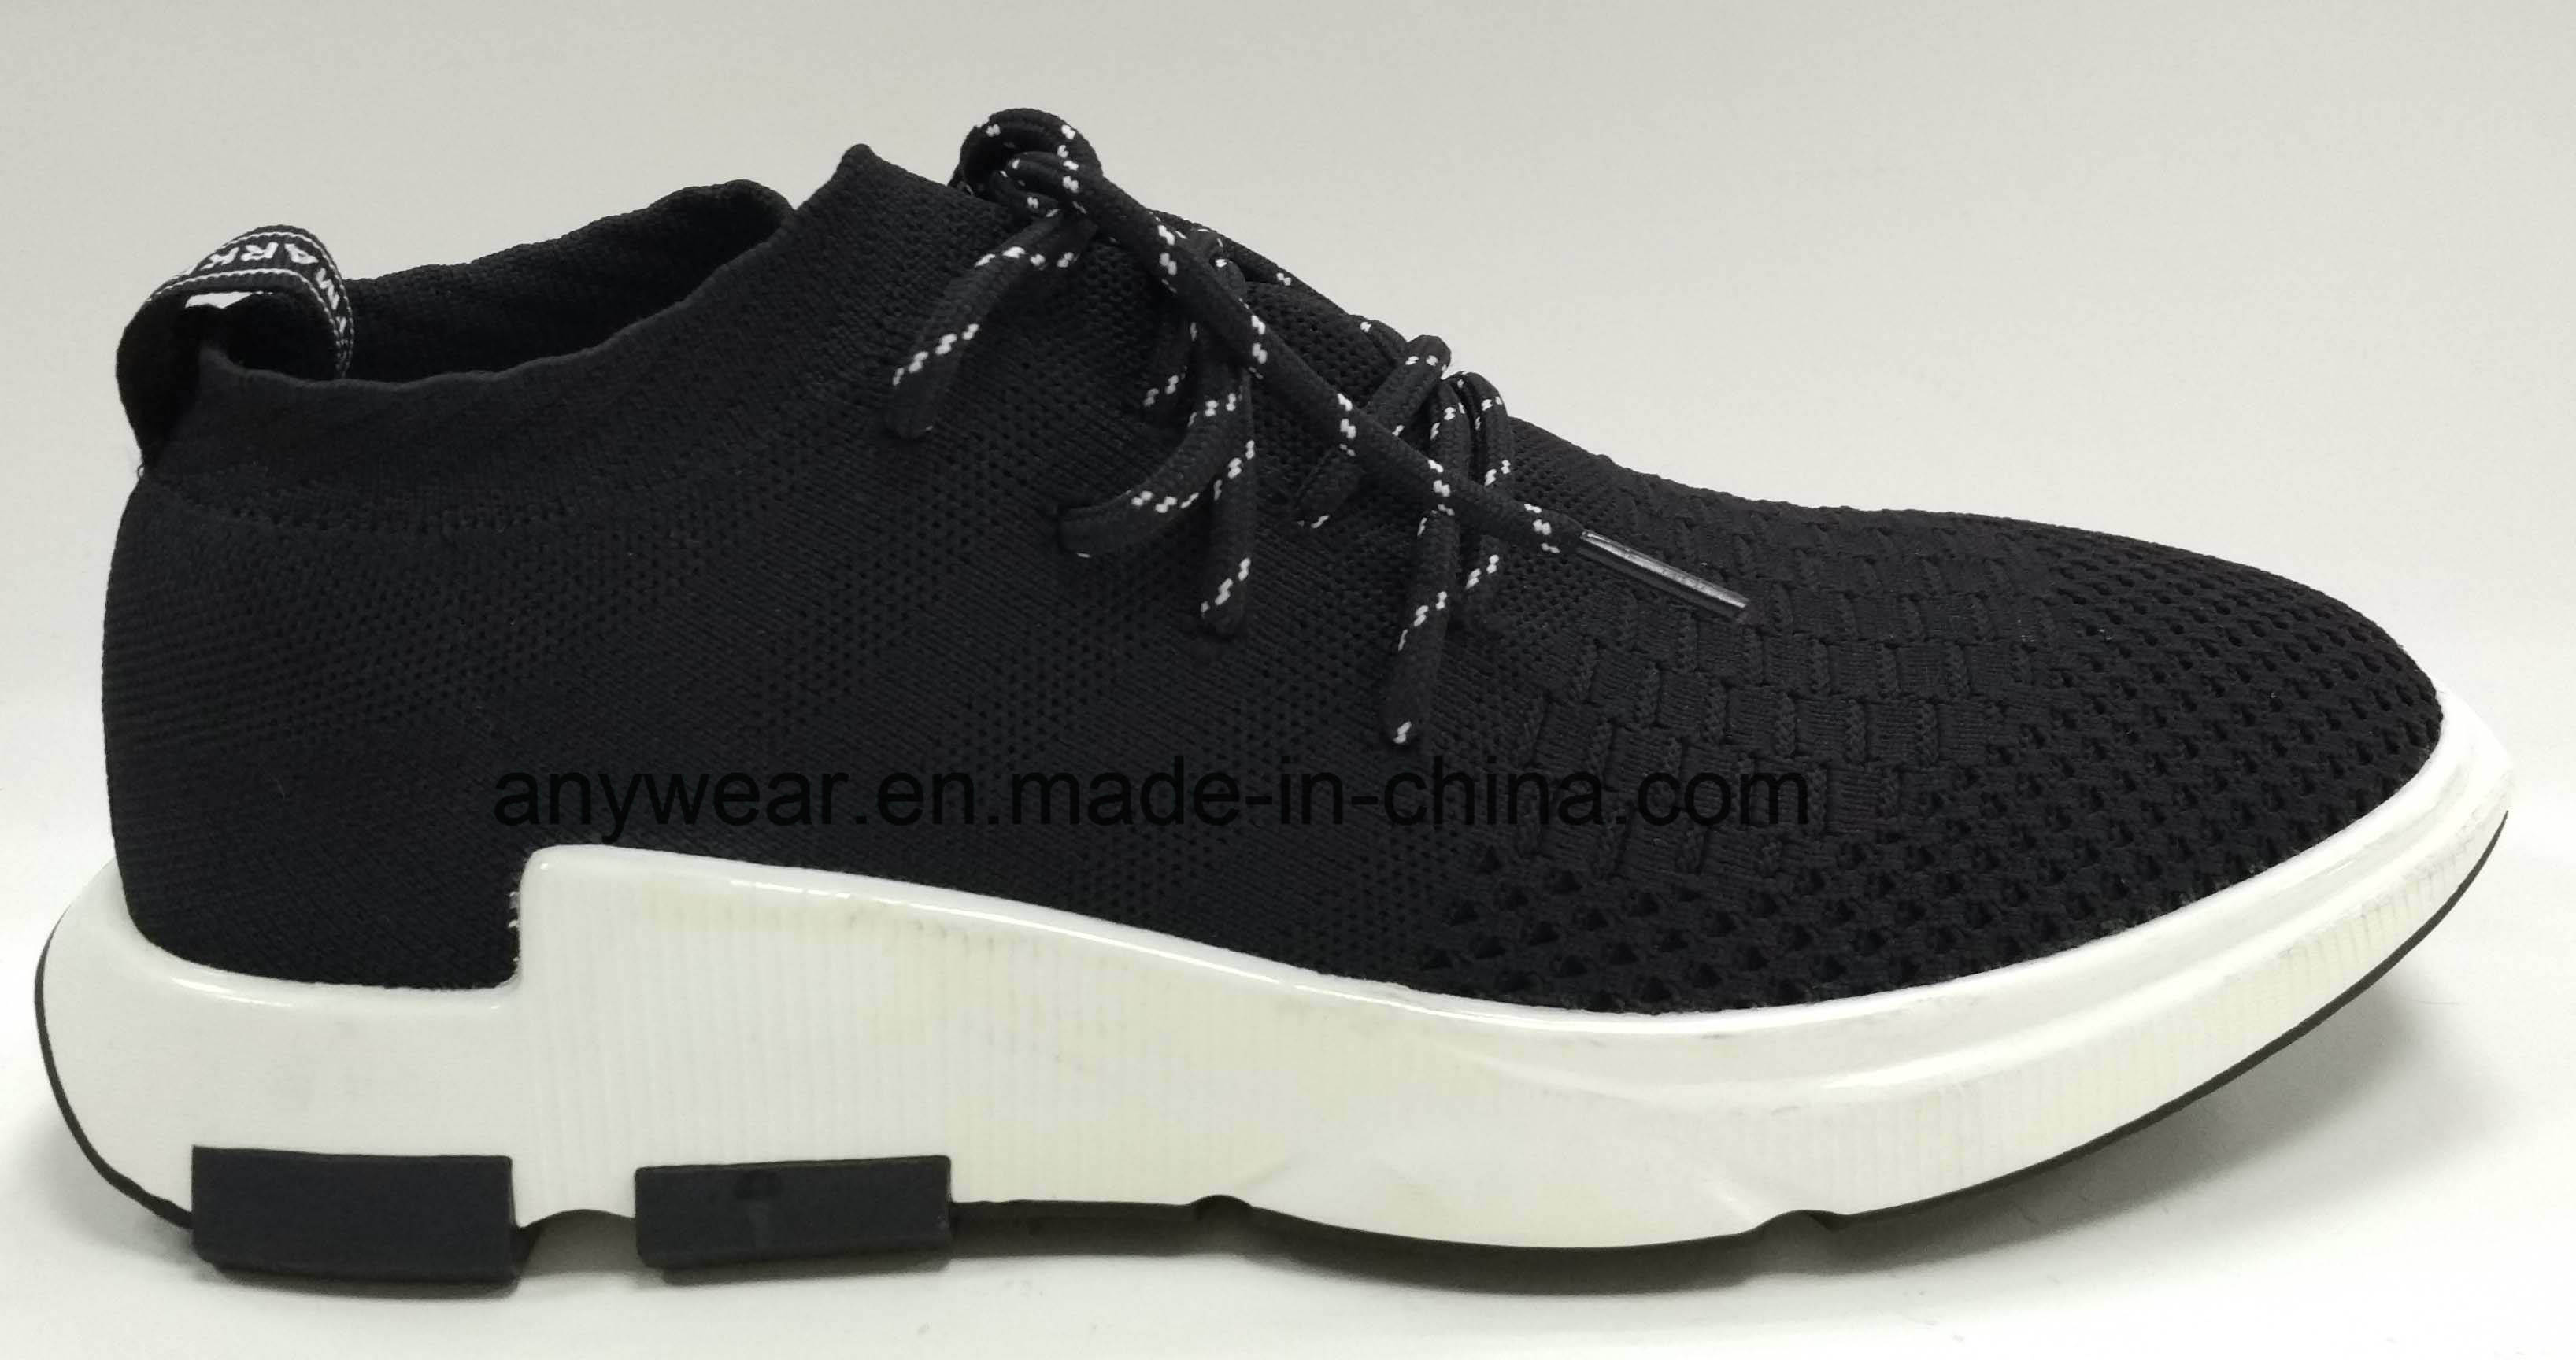 fec58b12933 China New Fashion Sports Casual Running Shoes Yeezy Footwear Sneaker for  Men and Women (085) - China Shoes